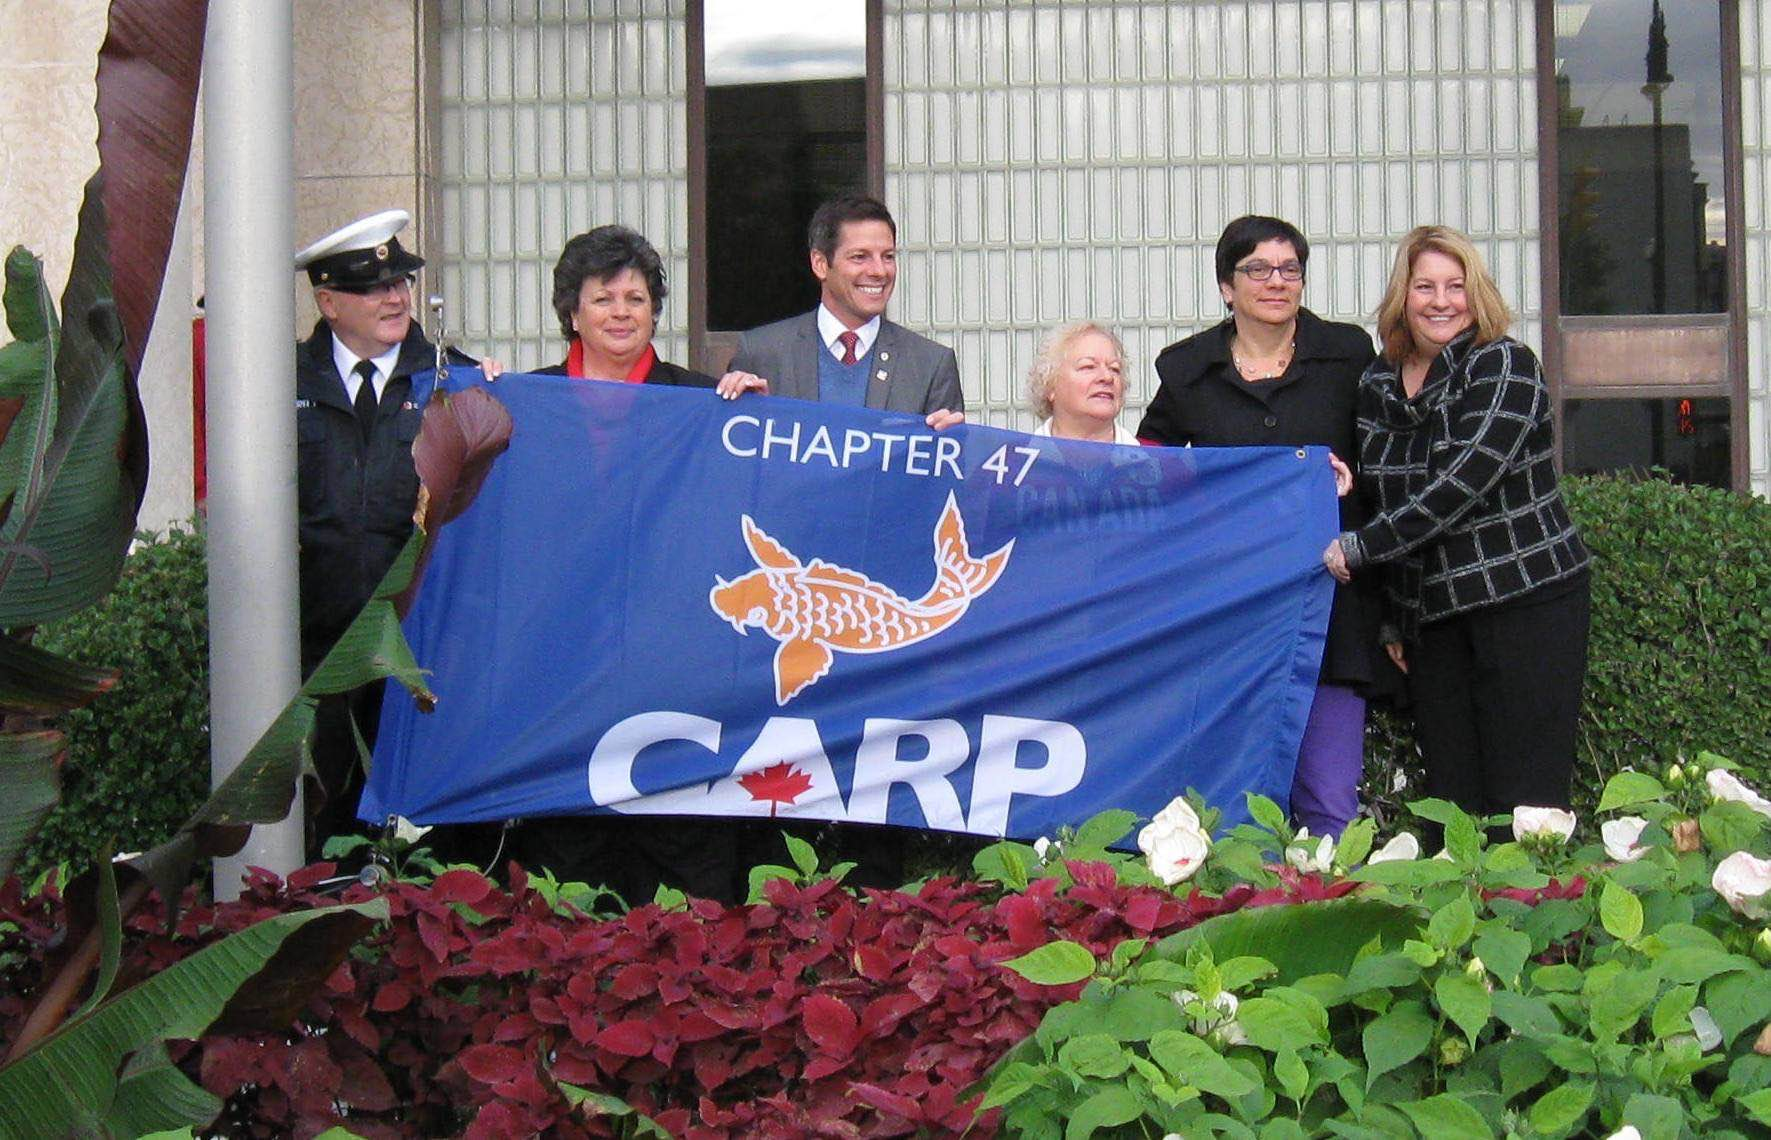 over 40 carp flags raised highlights from national seniors day